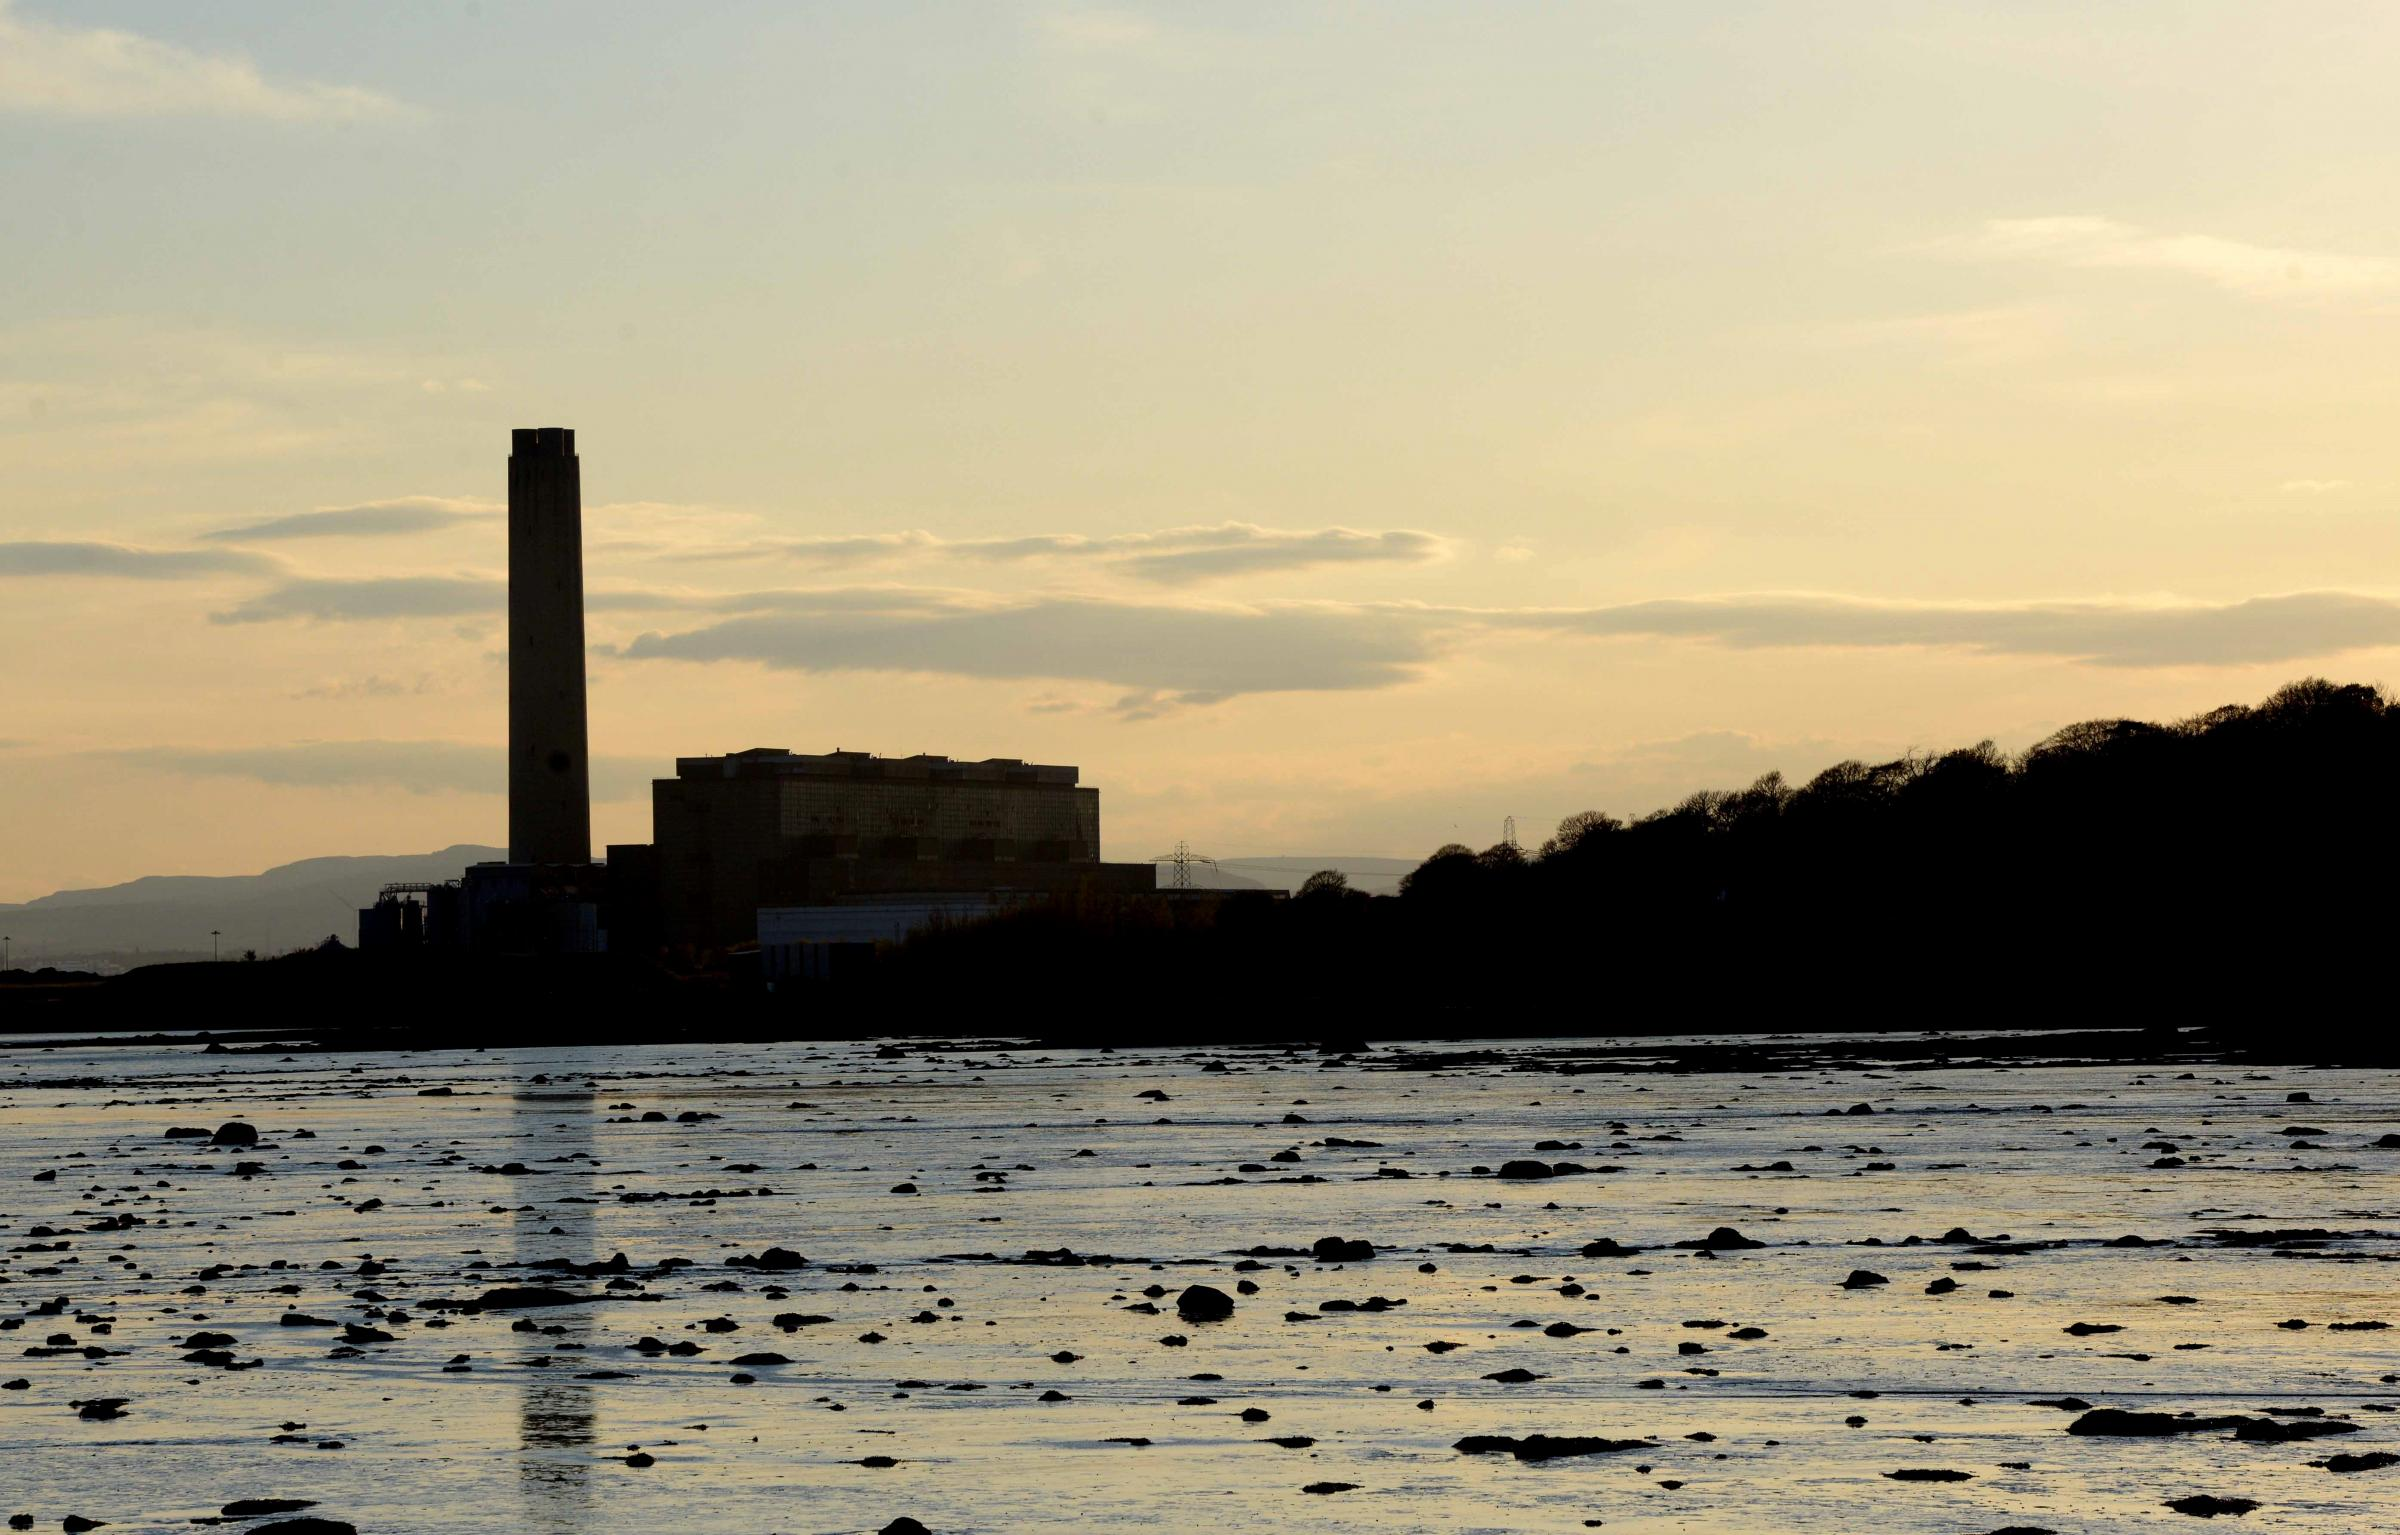 The lagoon serviced Longannet Power Station and contains ash slurry pumped out of it.